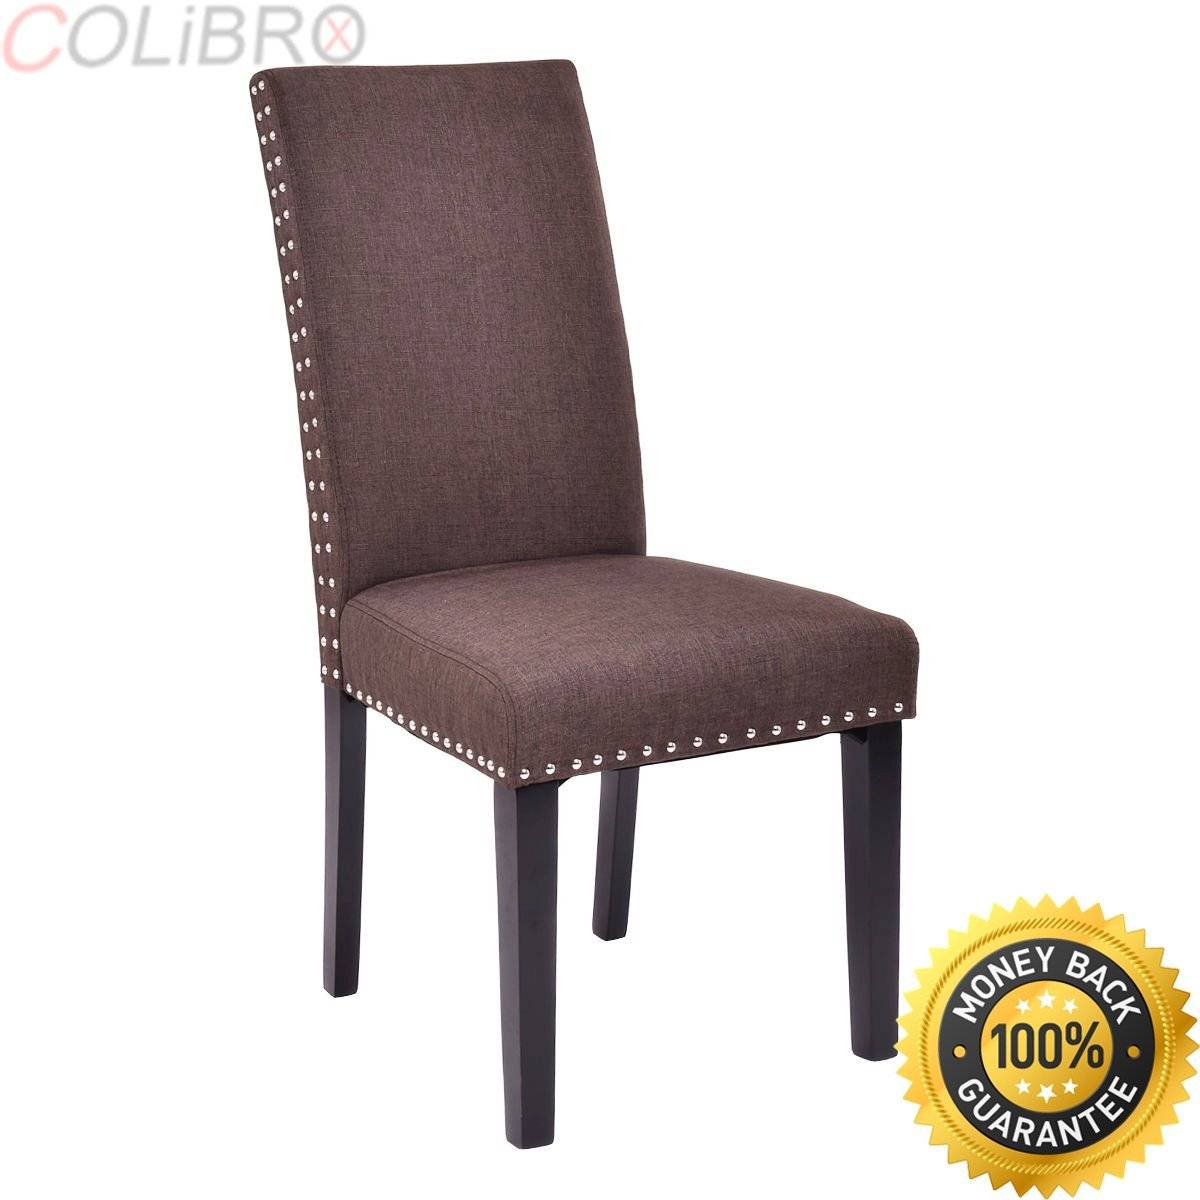 Western Chairs Cheap Western Accent Chairs Find Western Accent Chairs Deals On